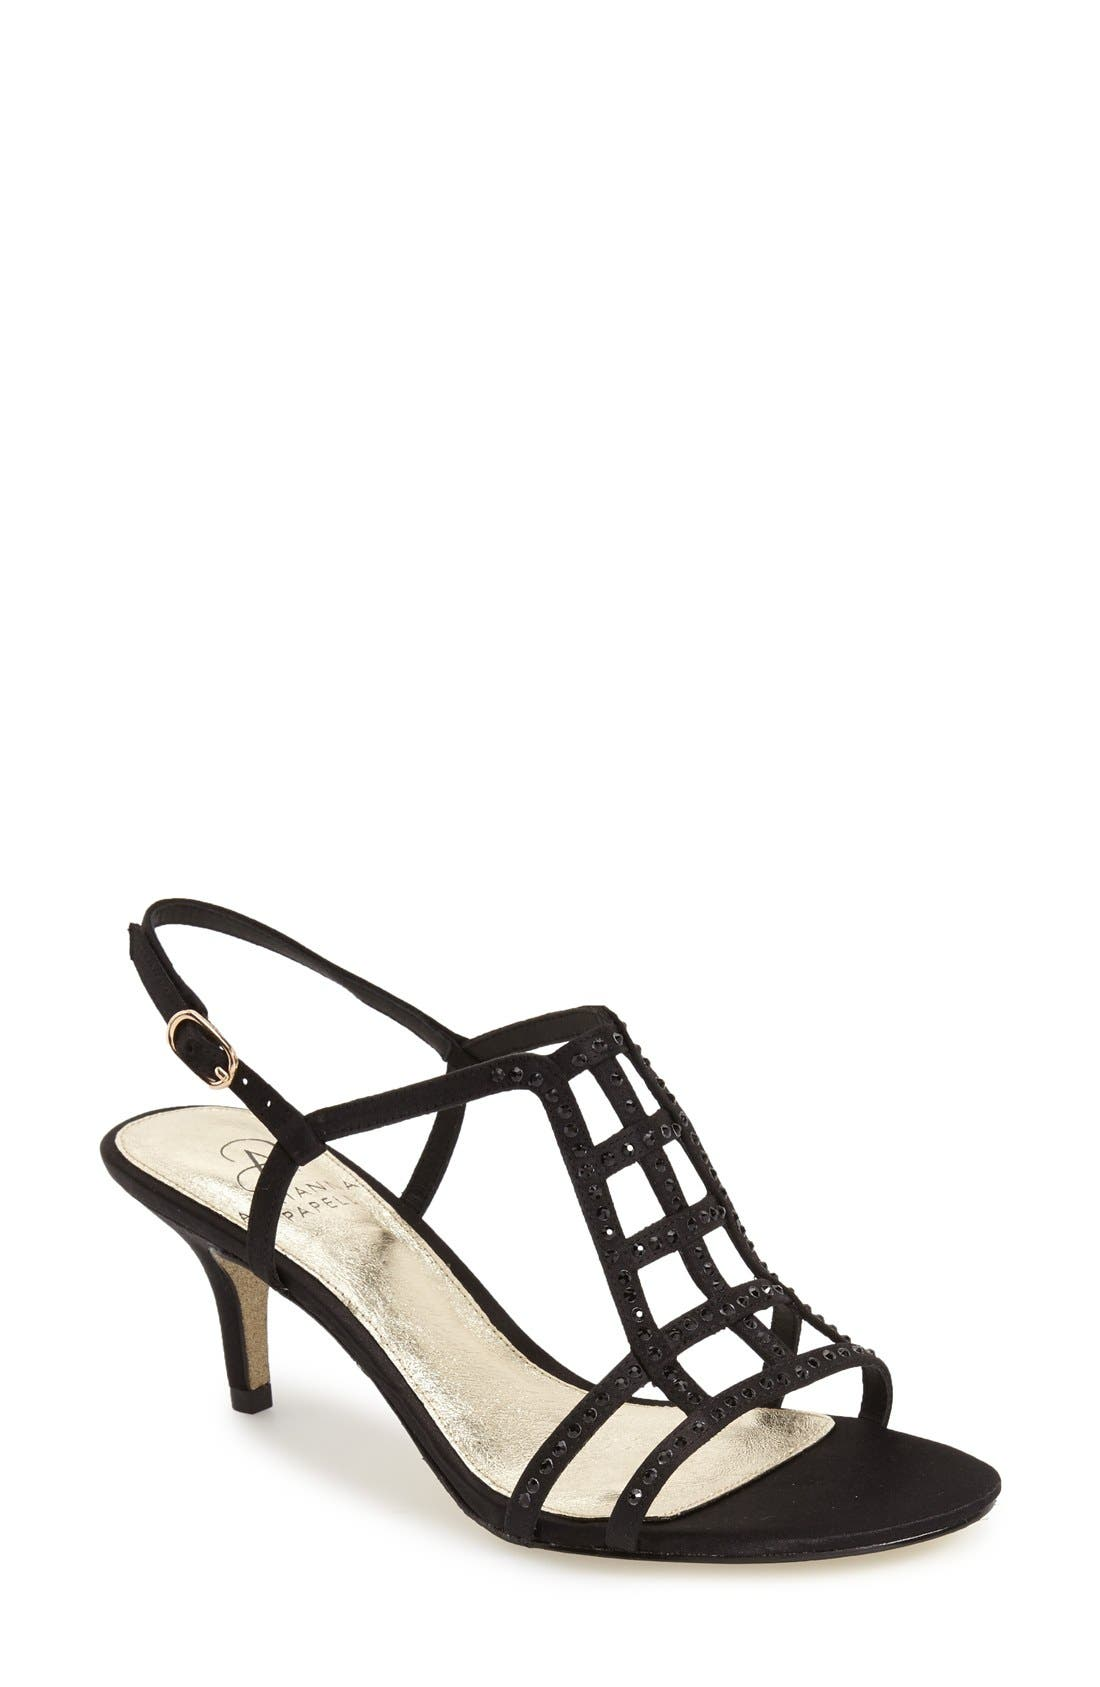 Main Image - Adrianna Papell 'Amari' Evening Sandal (Women)